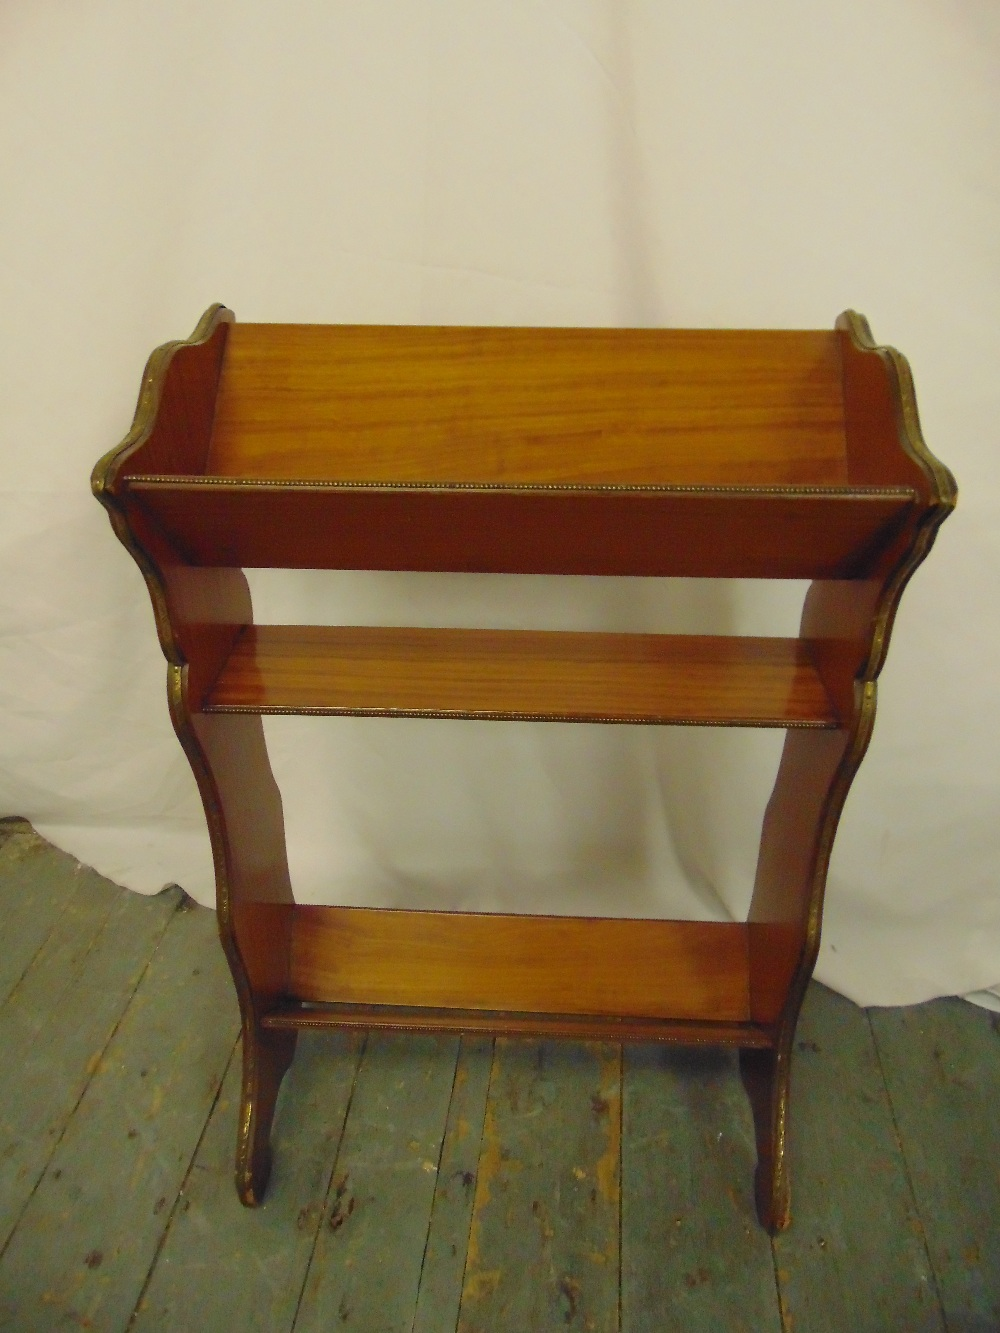 Lot 24 - A mahogany rectangular book stand with gilded metal mounts on four scroll legs